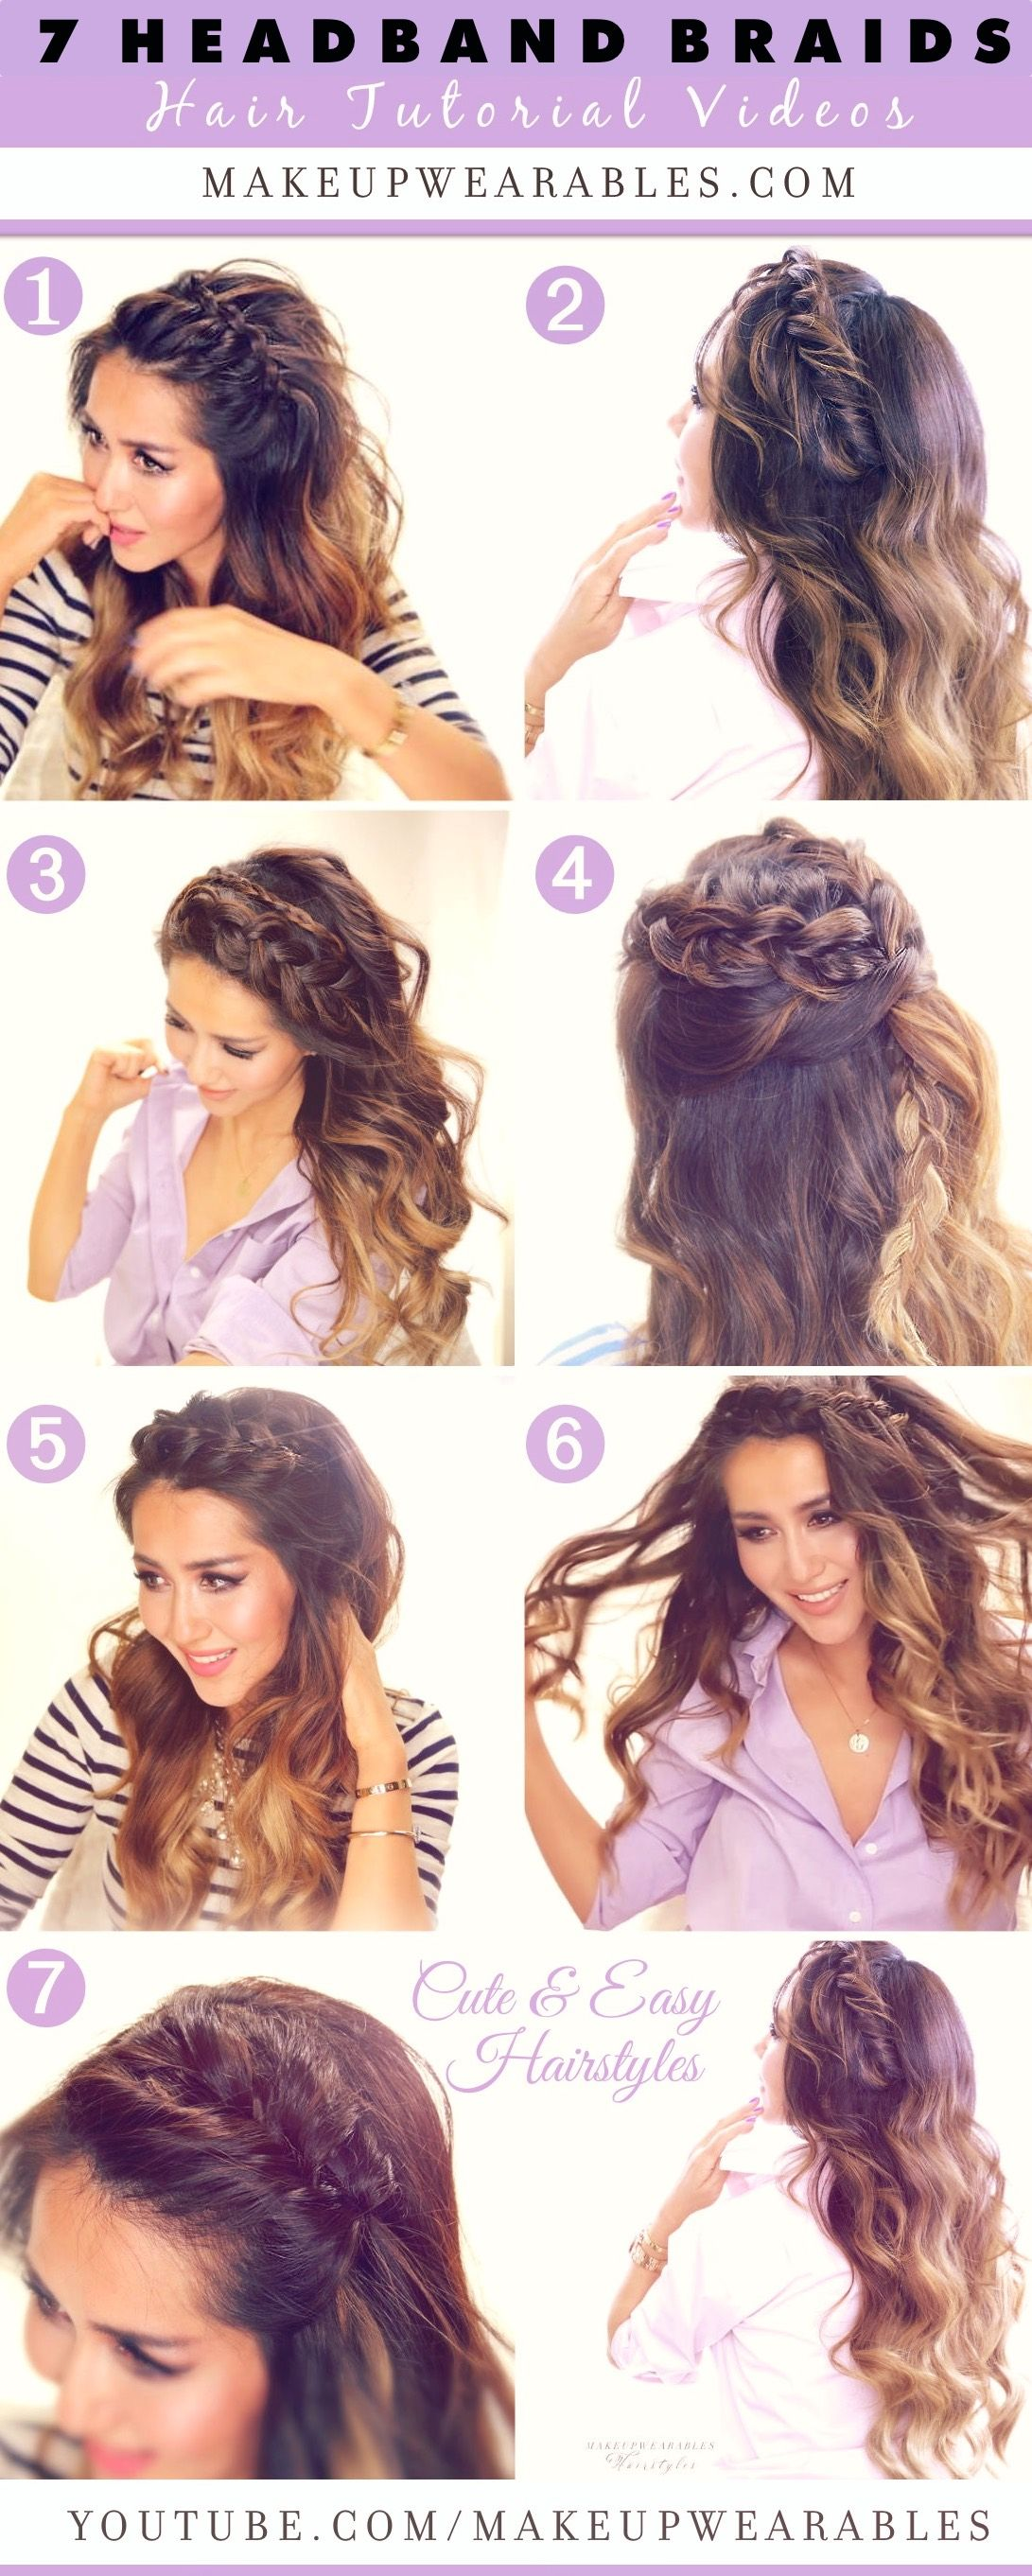 hair styles for winter 7 amp easy headband braid hairstyles to try in 2015 8579